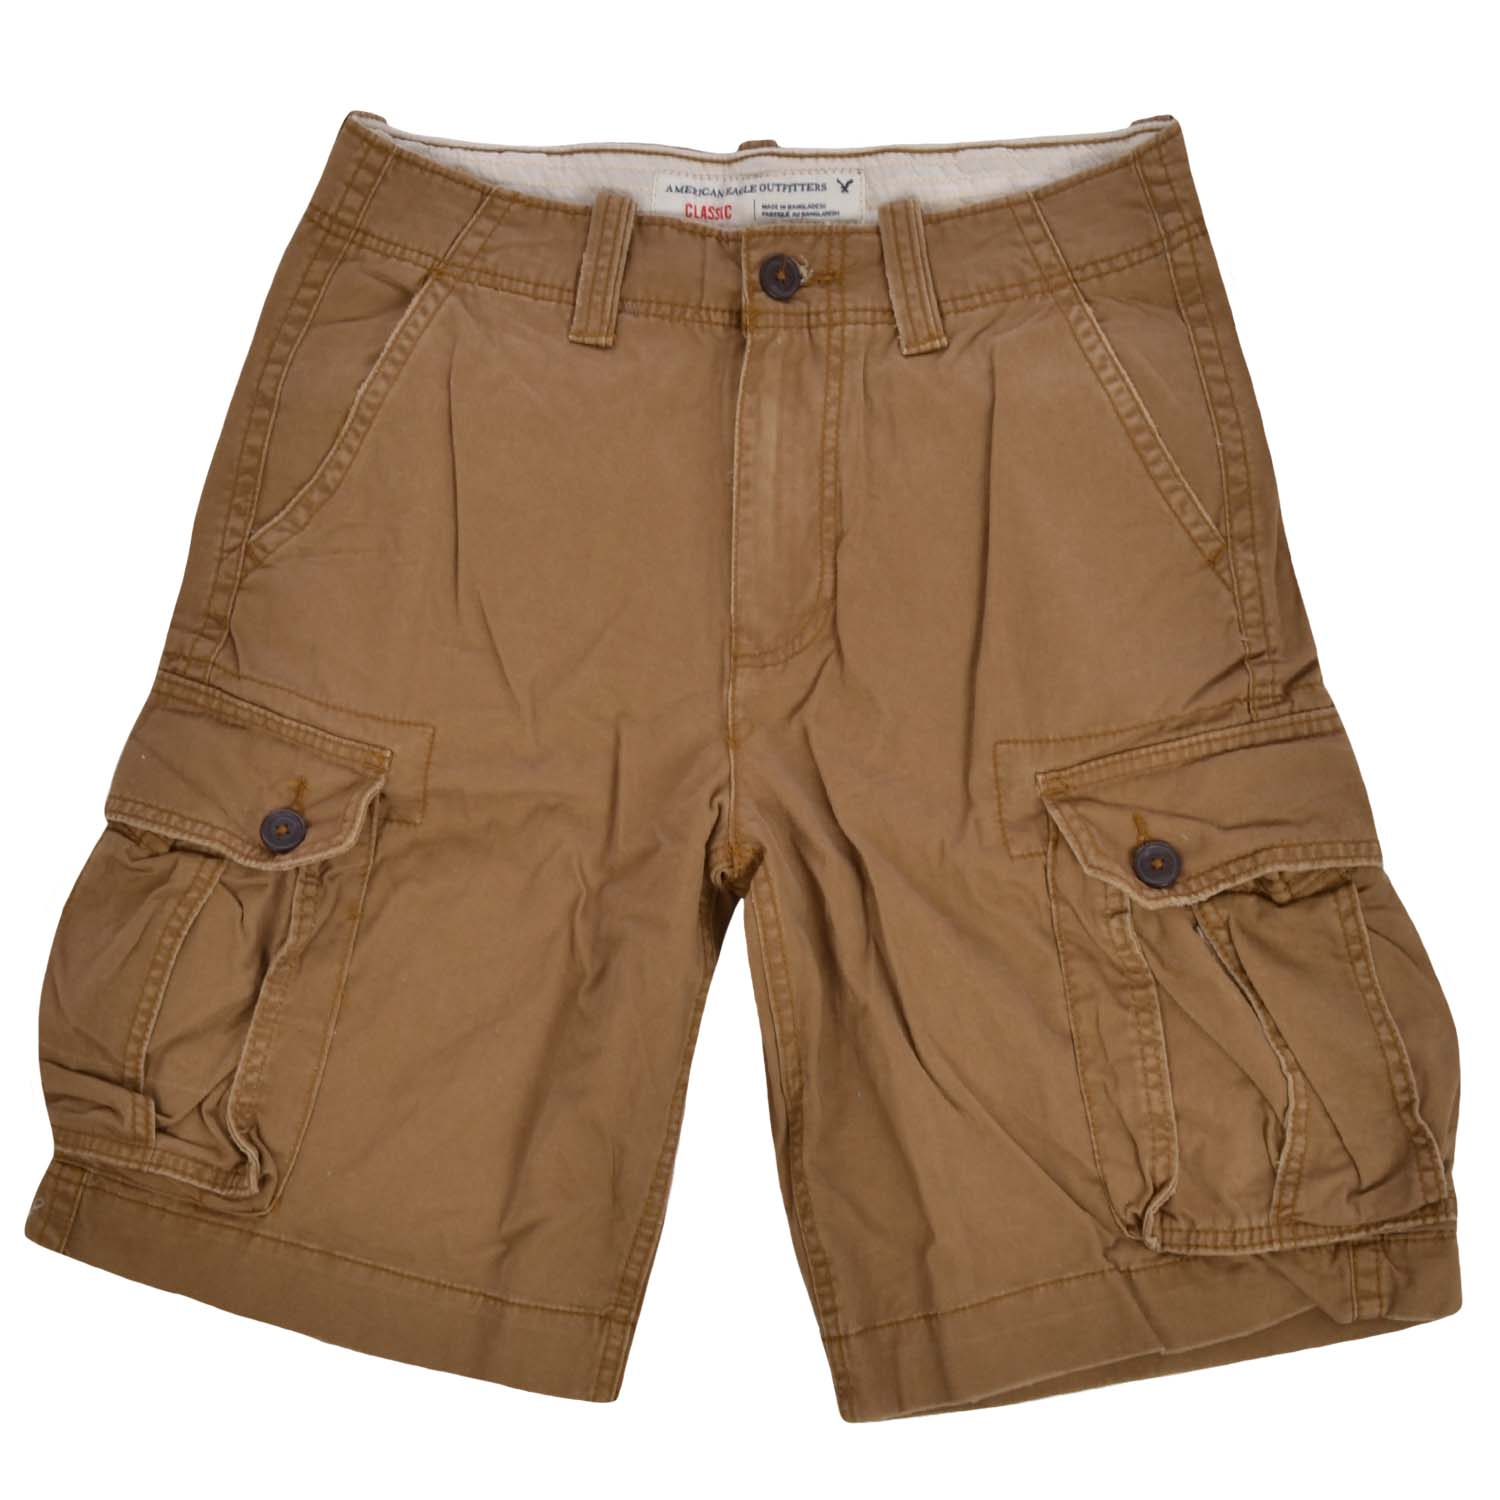 Find great deals on eBay for mens american shorts. Shop with confidence.